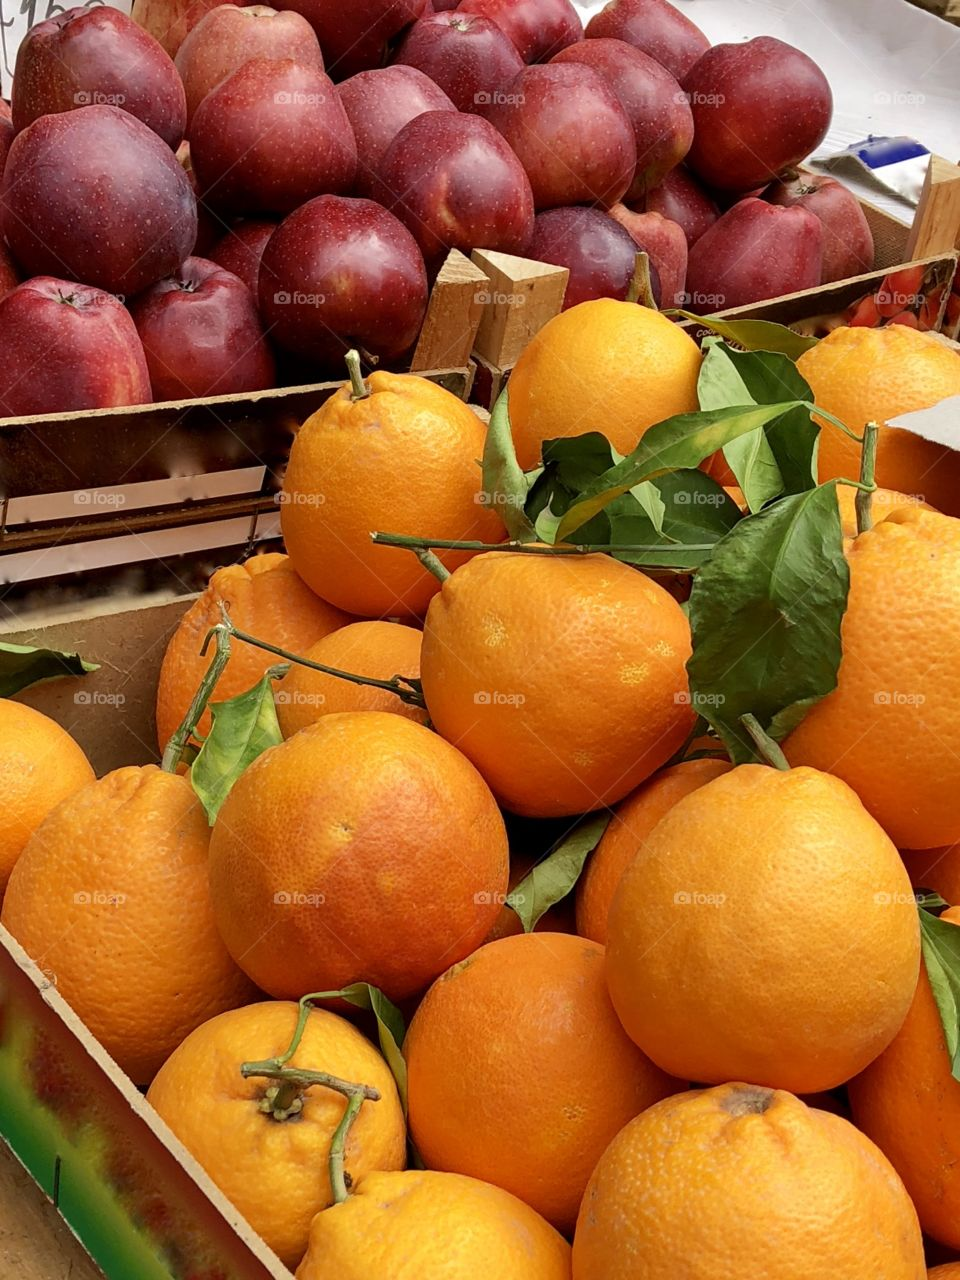 Fresh fruit and vegetables on display for sale at market